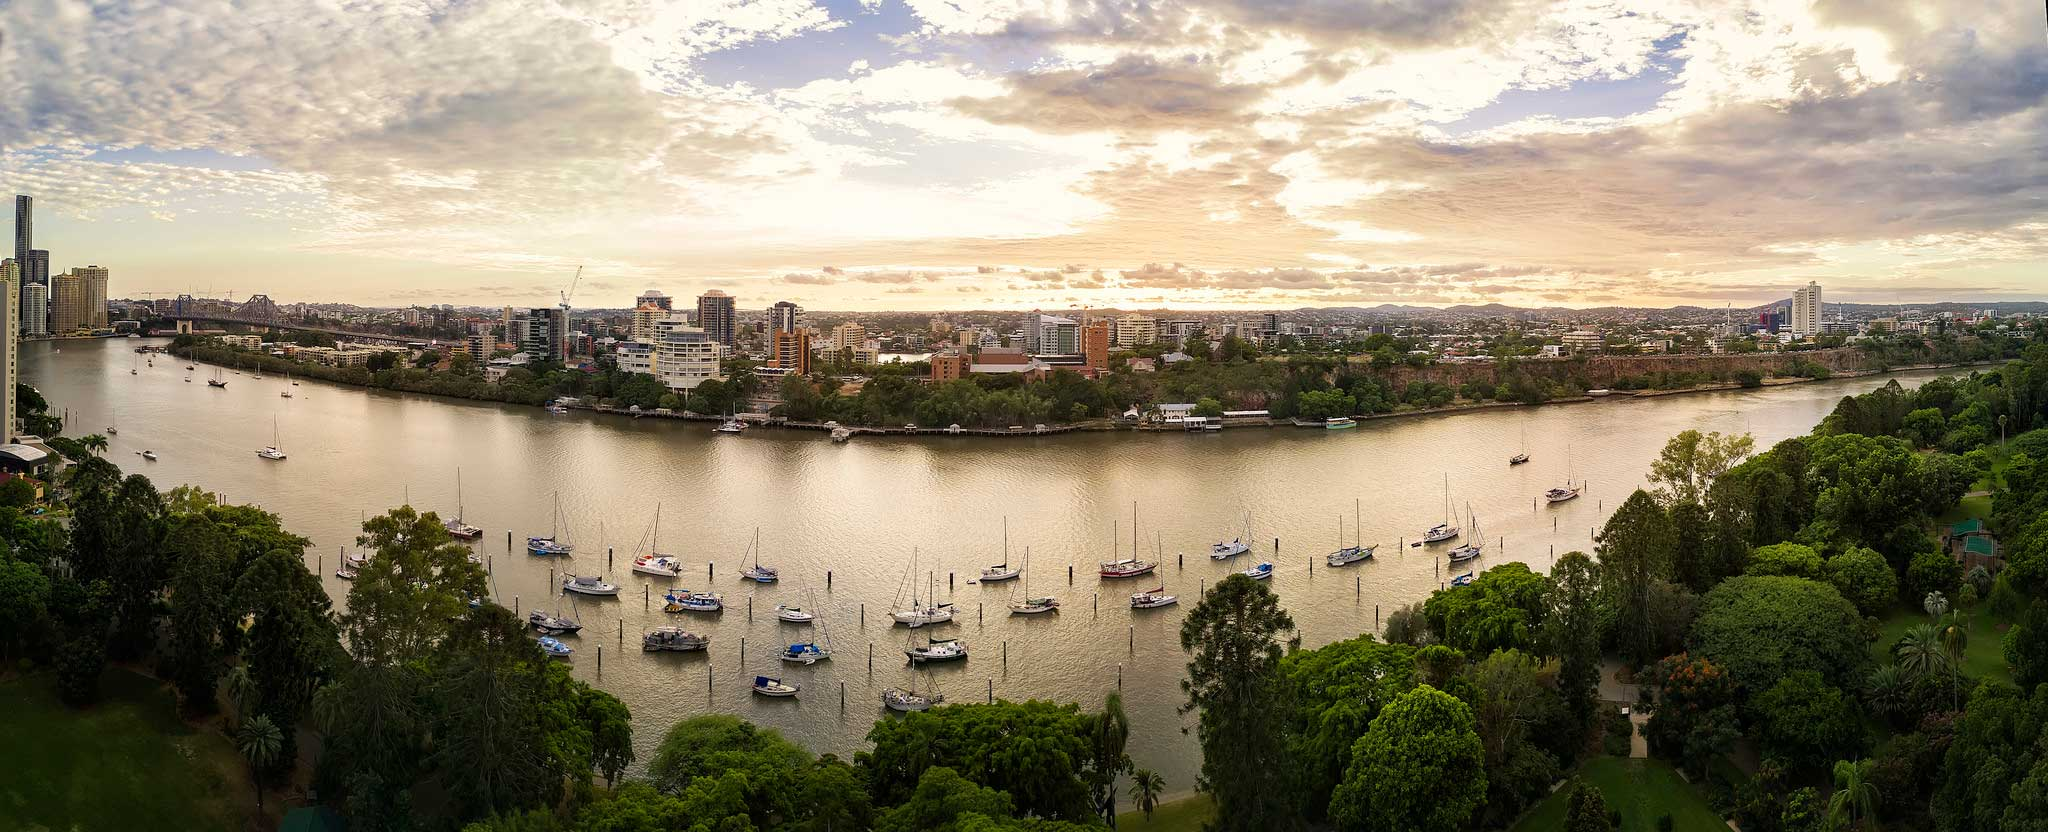 Purchase Image - Brisbane Botanic Gardens by DroneAce - Digital download available